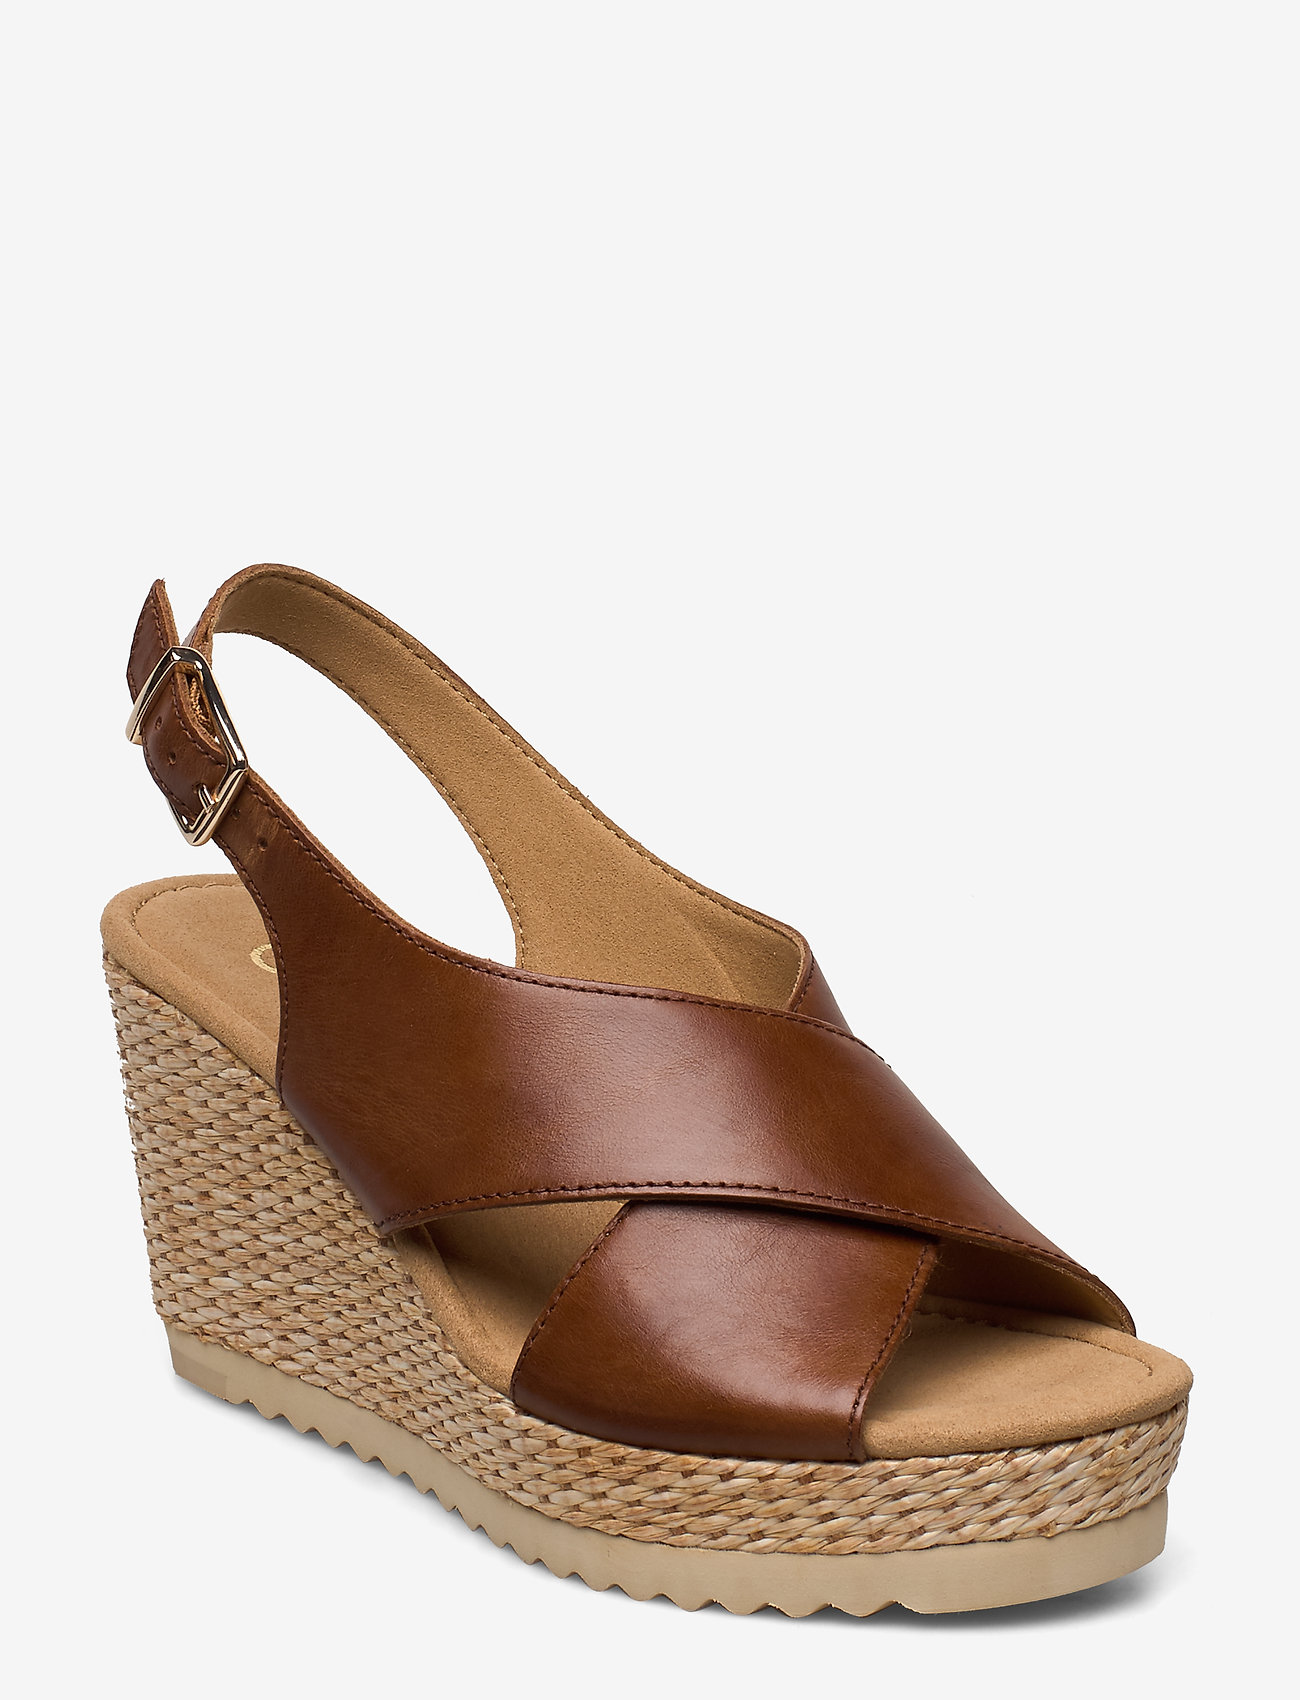 Gabor - sandals - espadrilles met sleehak - brown - 0